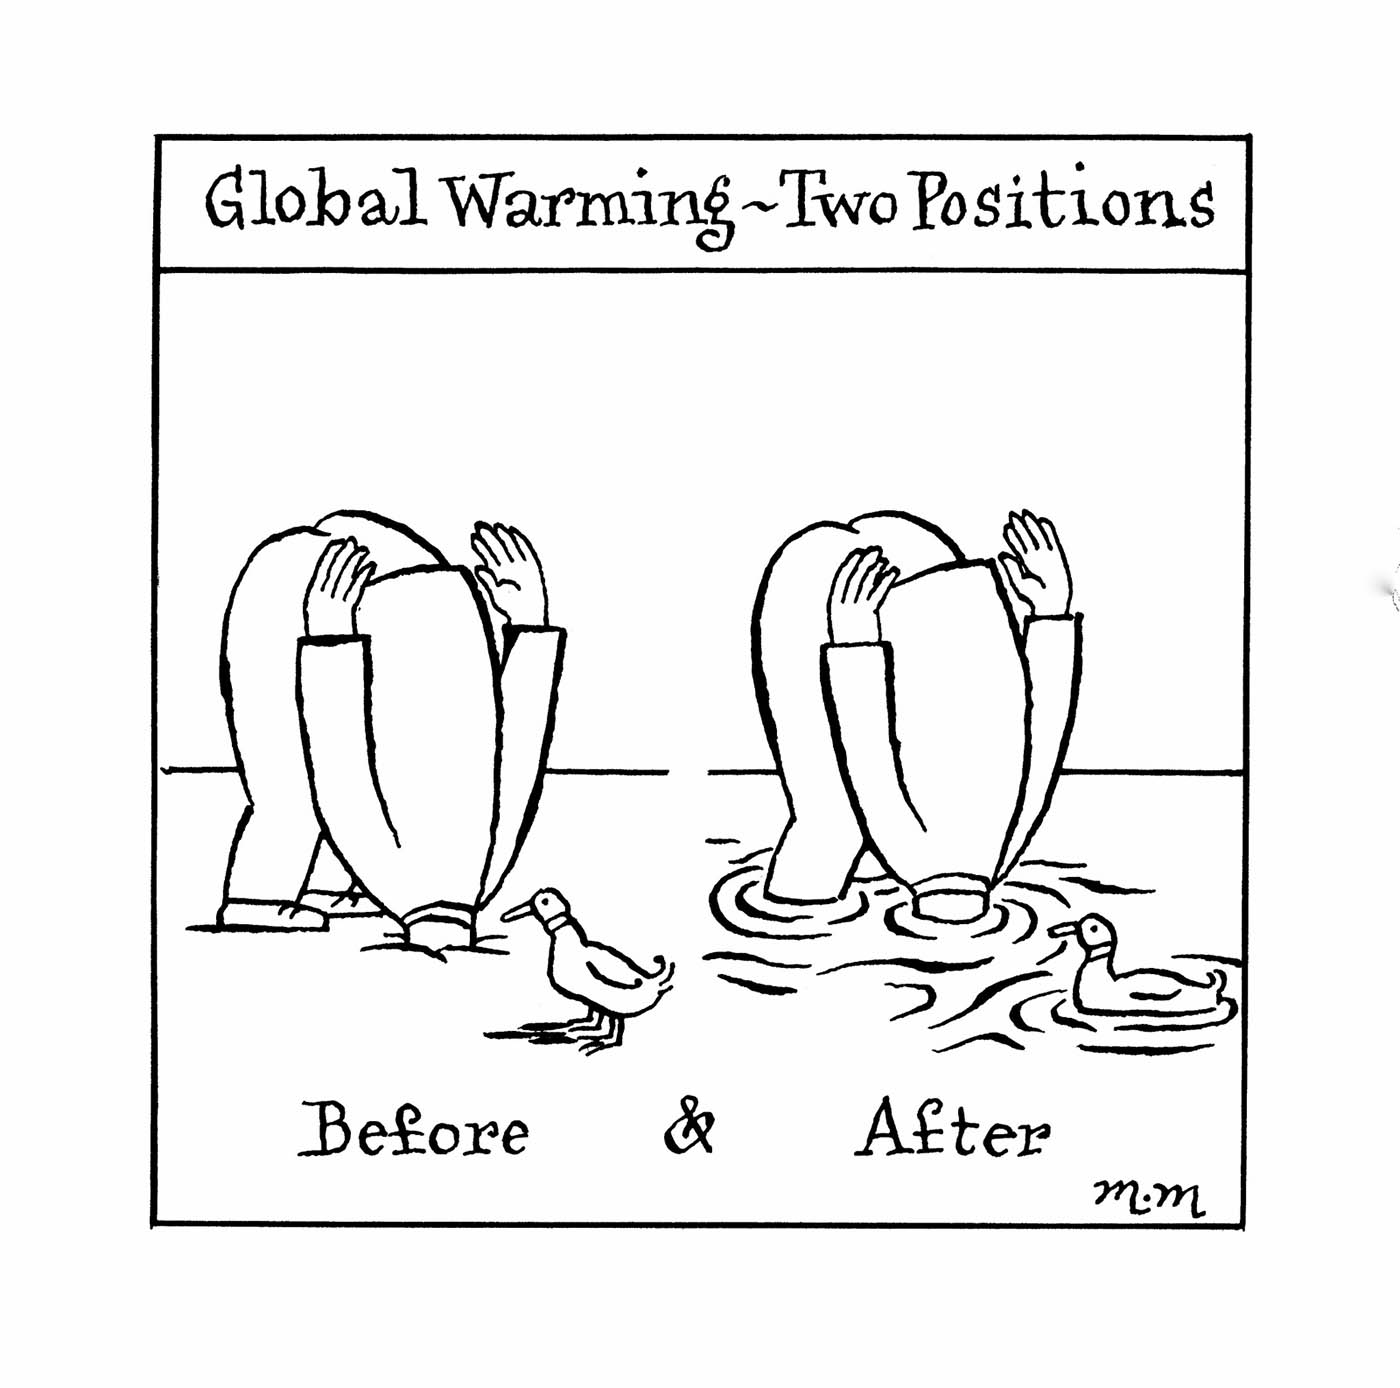 A black and white cartoon depicting two people, both bent over with their heads obscured. The person on the left has their head buried in soil. A duck looks at the person. Under the person and the duck is written 'Before'. The person on the right, most likely the same person, has their head submerged in water. The duck is seen again, however this time it's floating on the water's surface. Under the person and the duck is written 'After'. At the top of the cartoon is written 'Global Warming - Two Positions'.  - click to view larger image